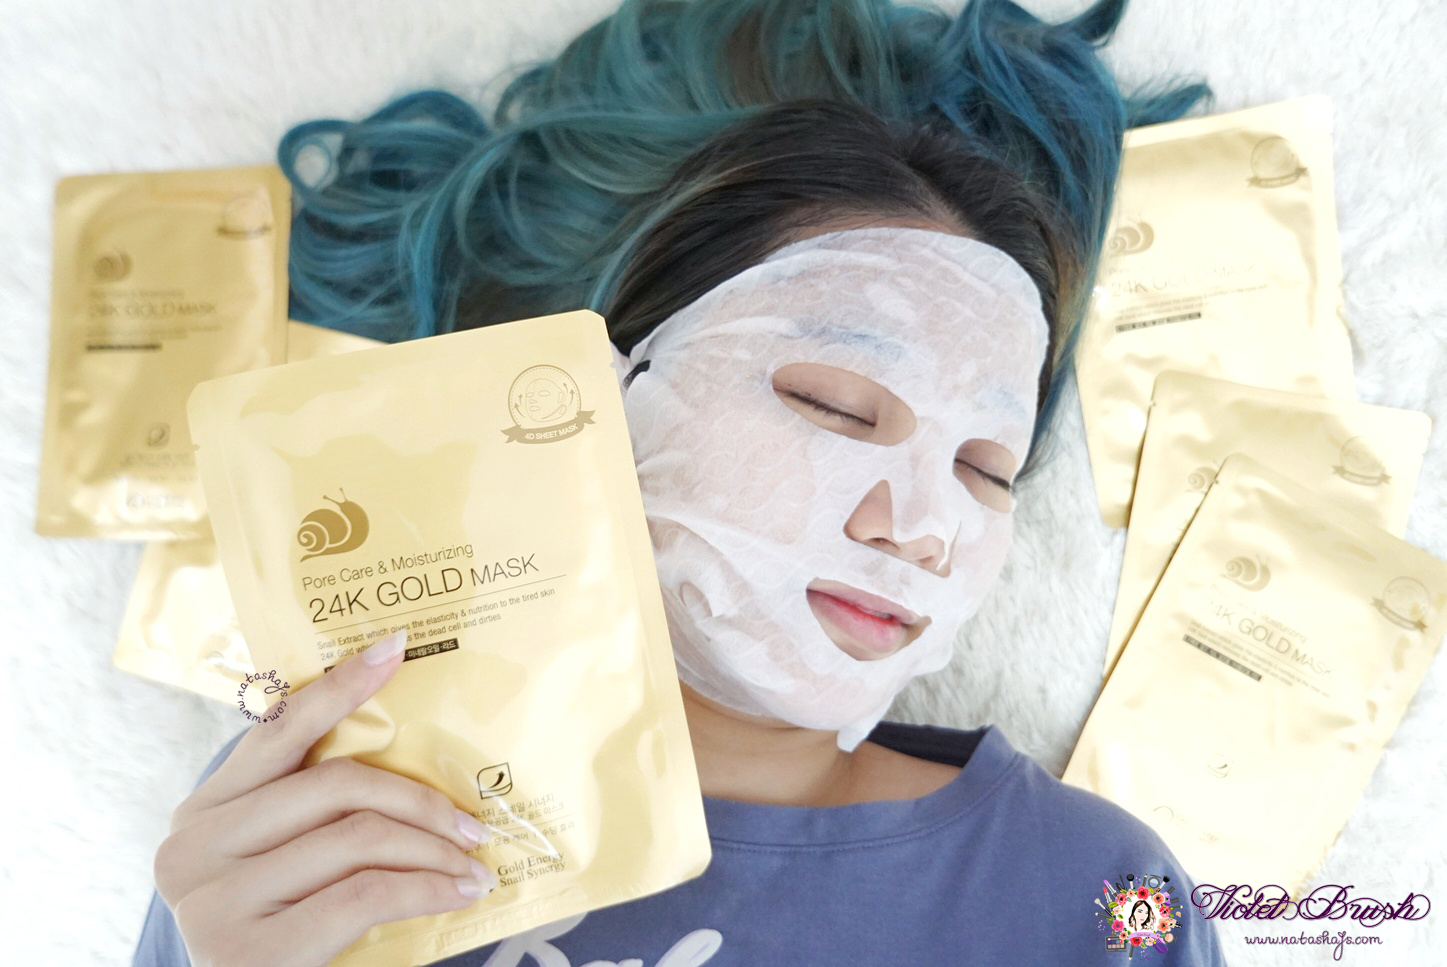 j&g-cosmetics-4d-24k-gold-snail-mask-sheet-korean-lifting-mask